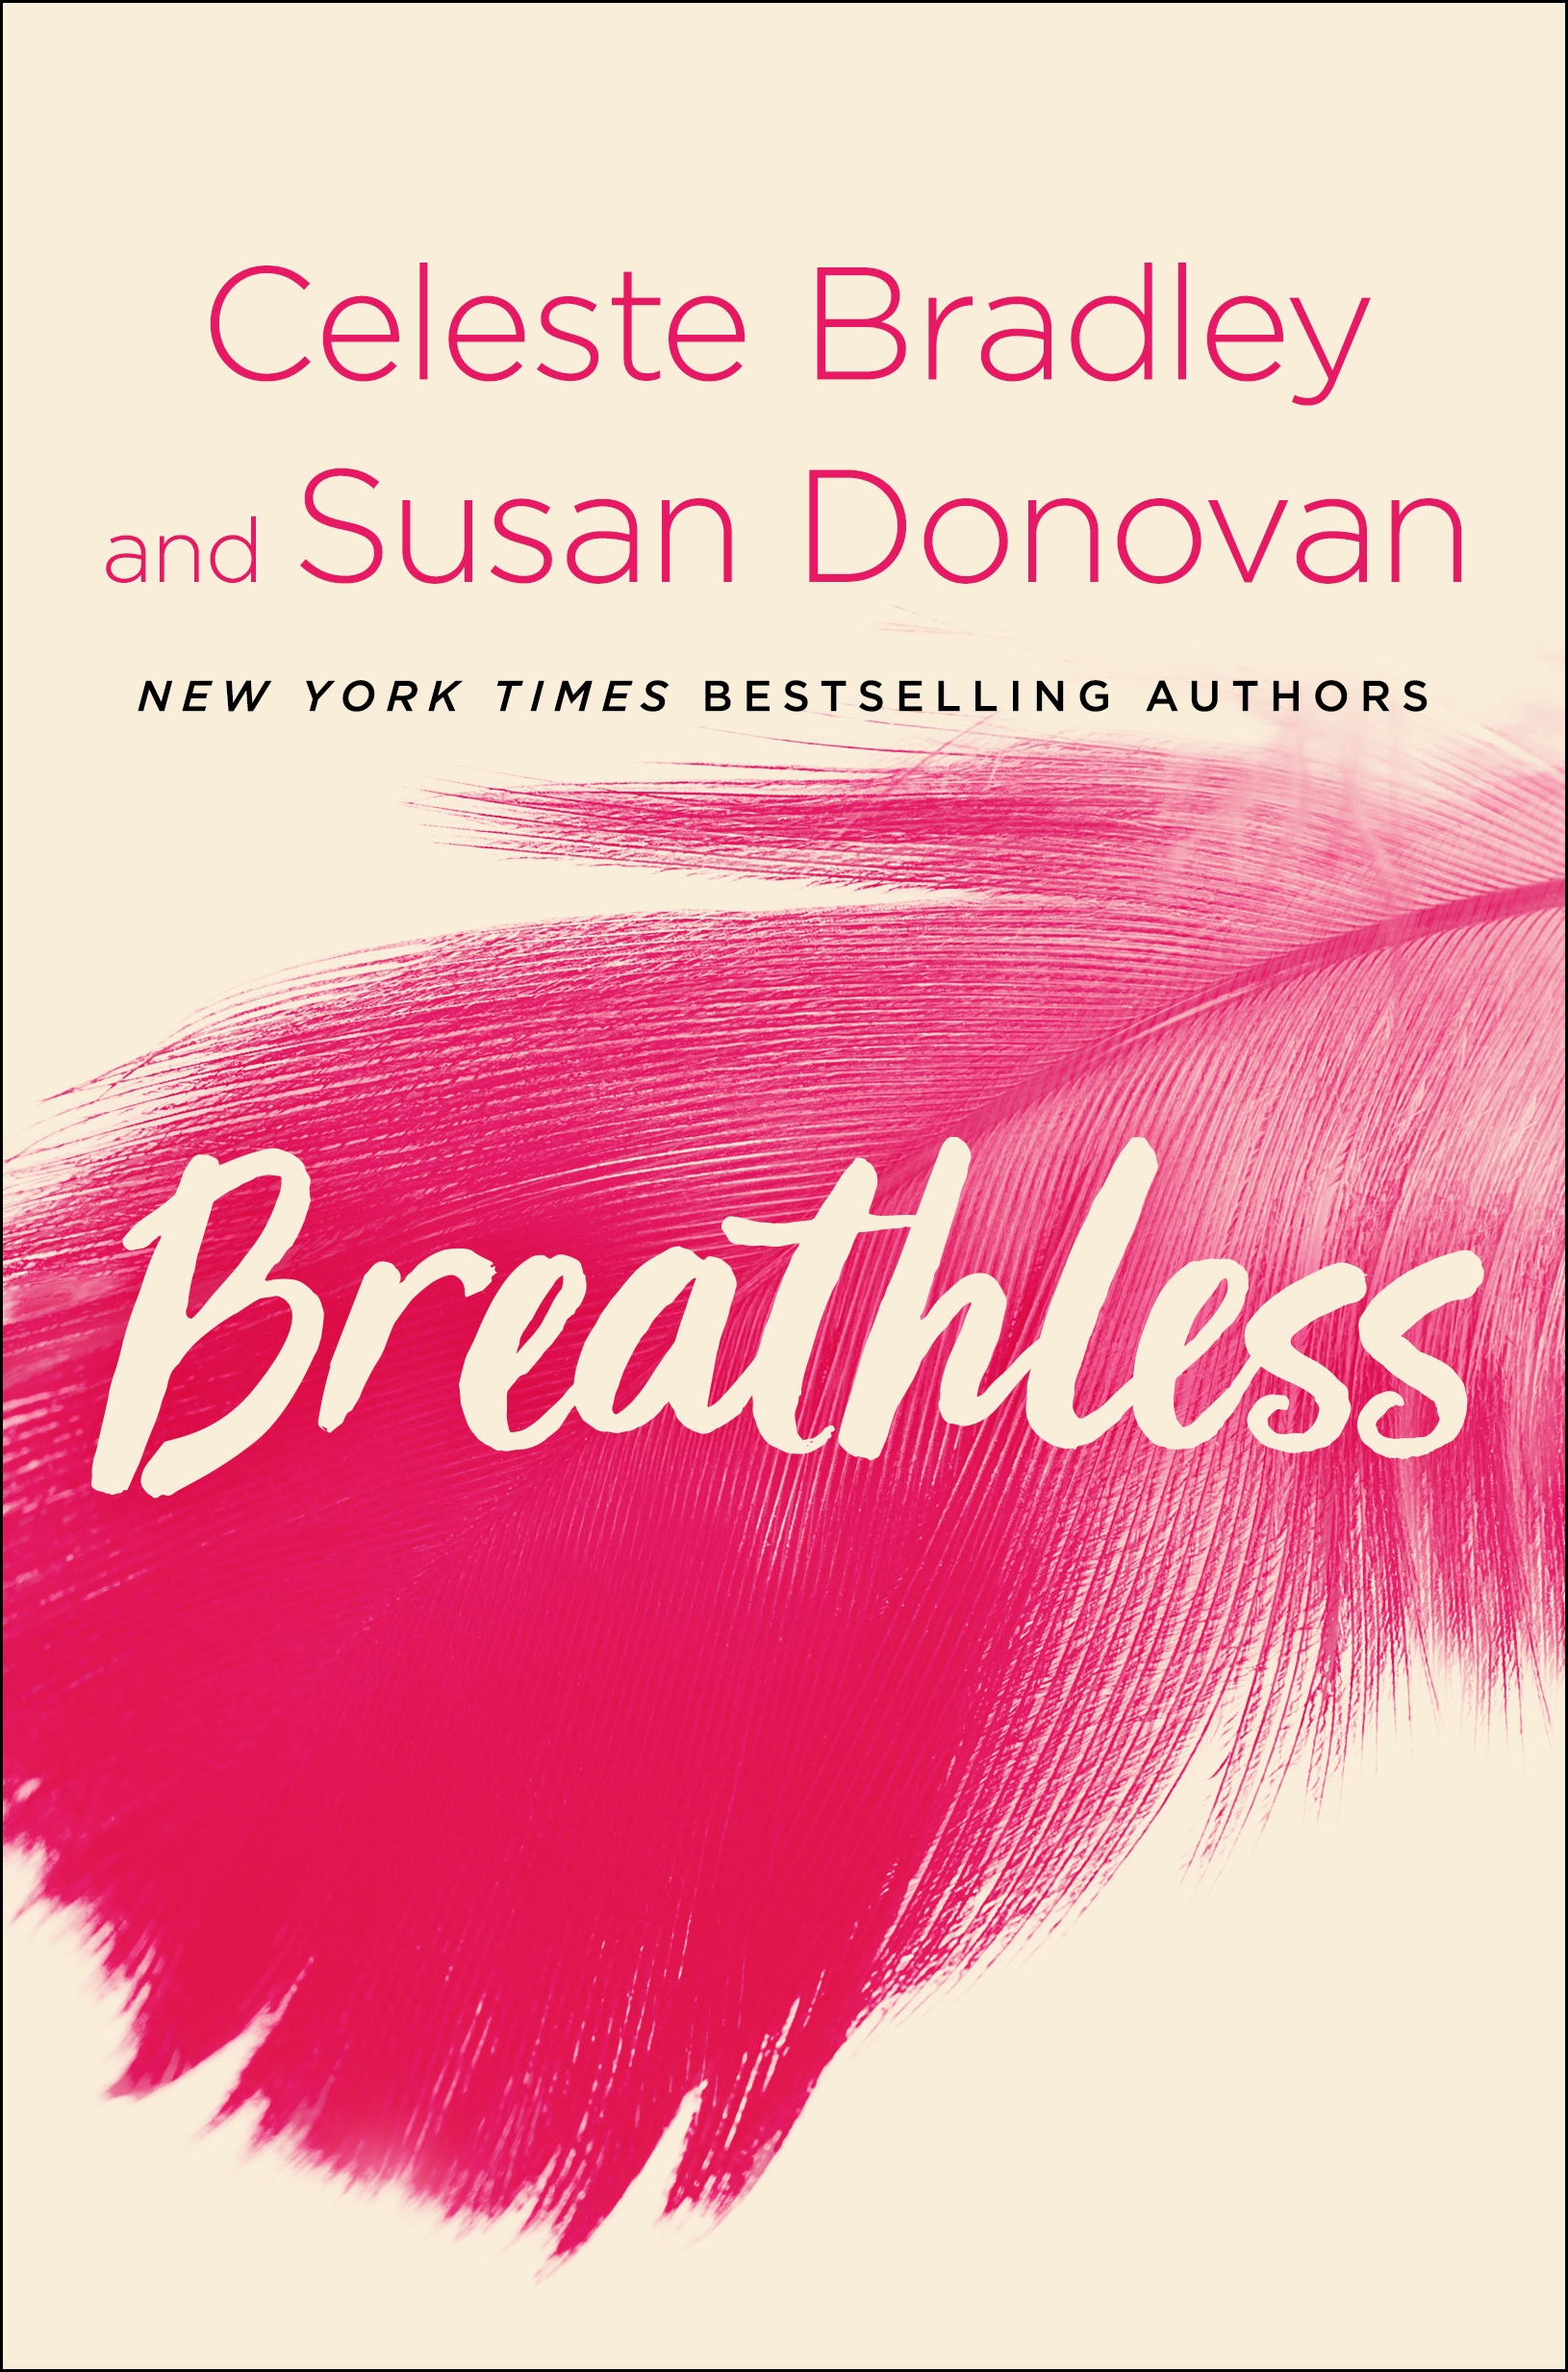 Blog Tour & Review: Breathless by Celeste Bradley and Susan Donovan